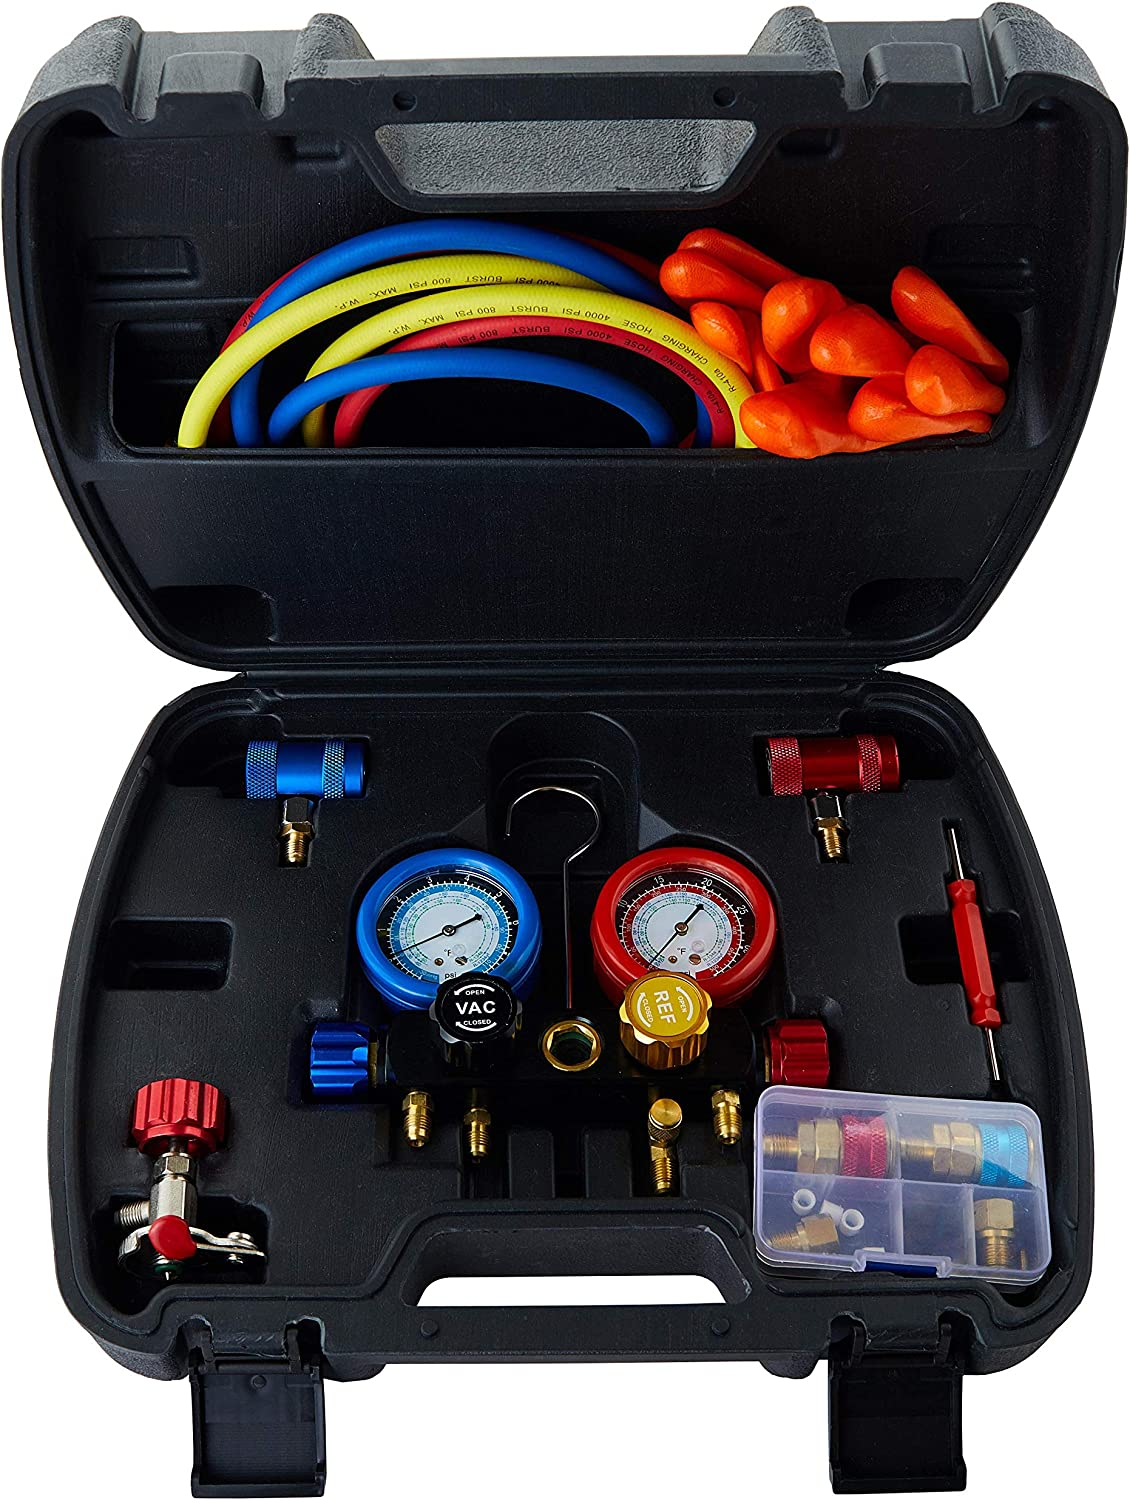 Lichamp AC R1234YF R134A Gauge Set, Automotive 4 Valve Manifold Gauge Compatible with R1234YF and R134A Refrigerants, Works on Car Freon Charging and Evacuation